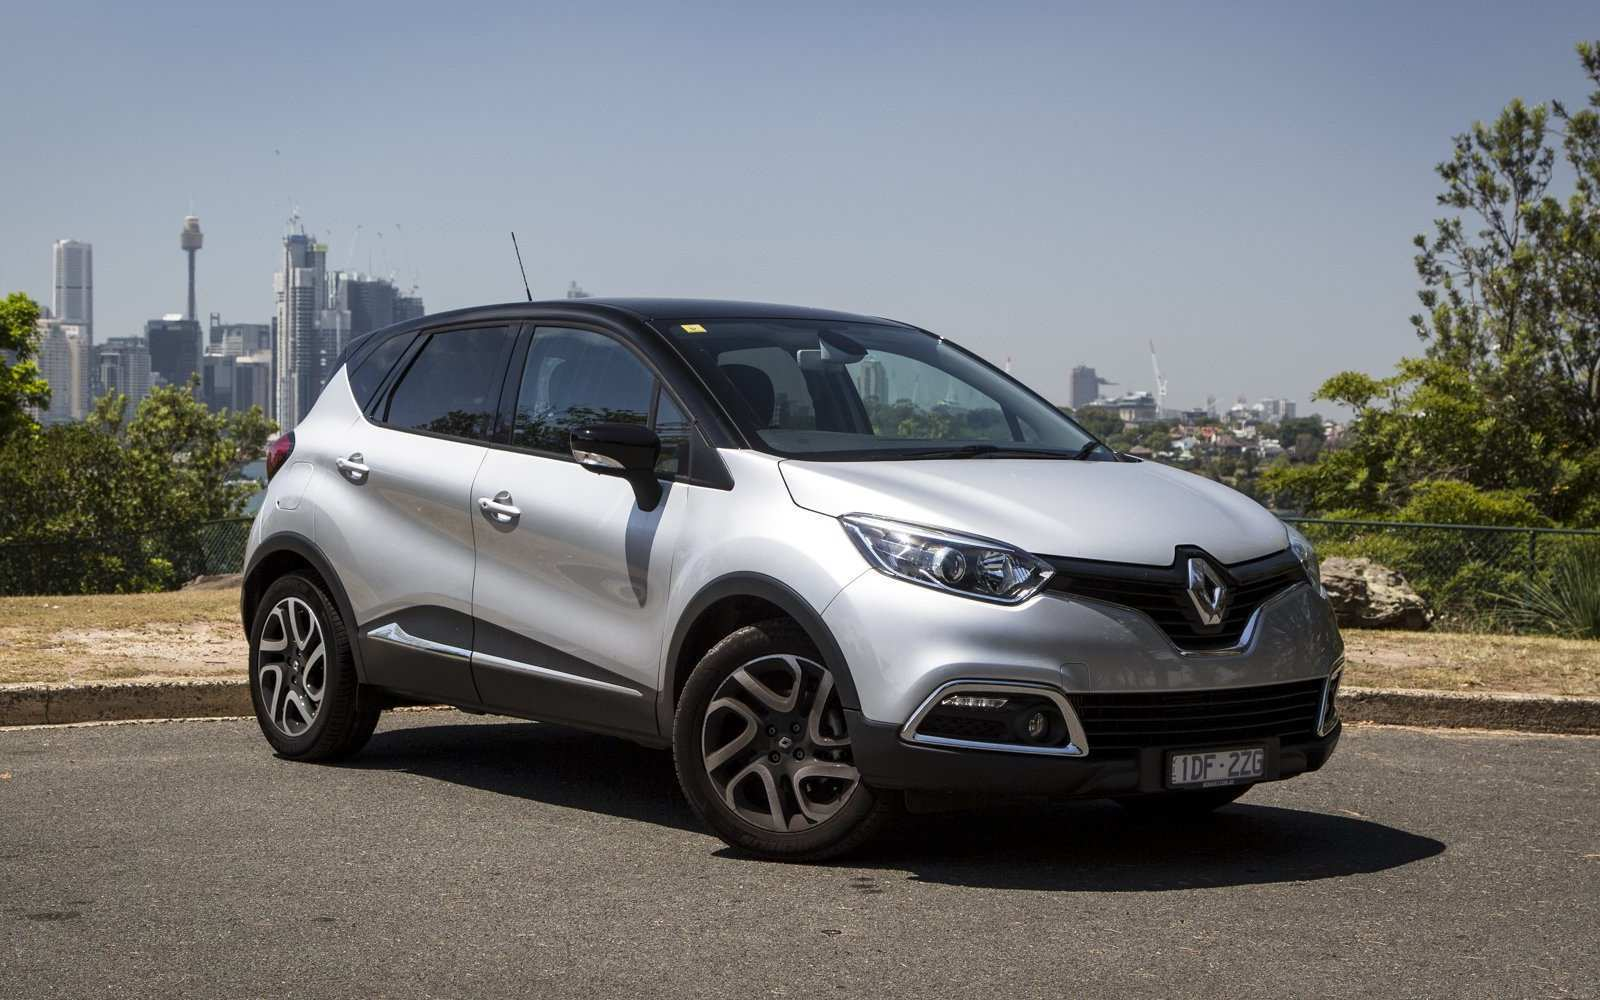 93 Great Renault Captur 2020 Price by Renault Captur 2020